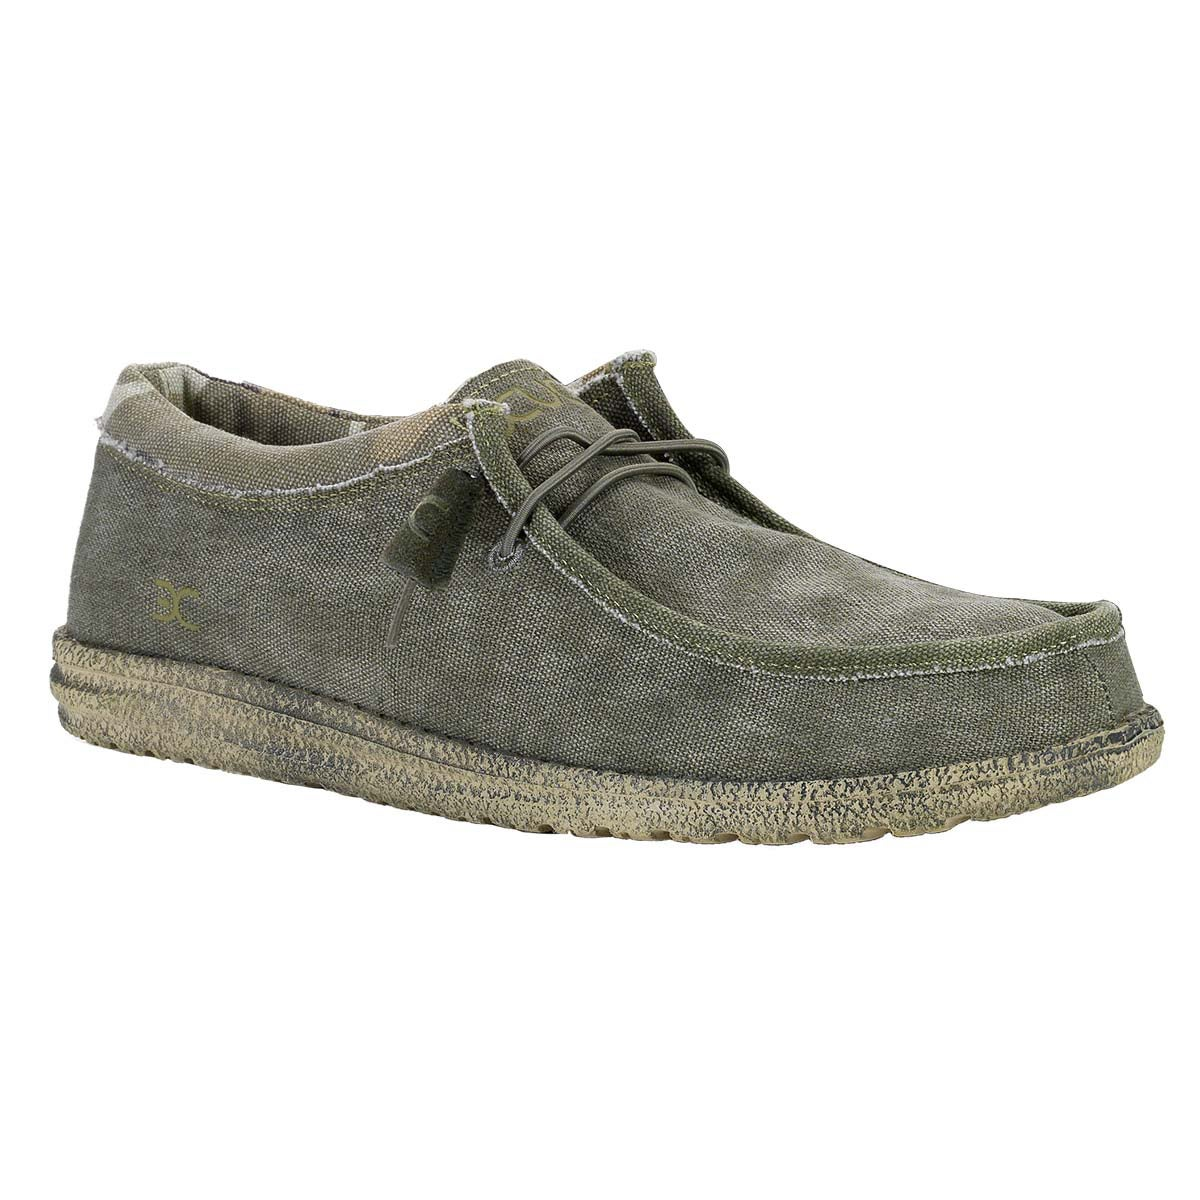 30769ff76bbde Shop Hey Dude Men's 'Wally' Sage/ Camo Shoes - Free Shipping Today -  Overstock - 10678979